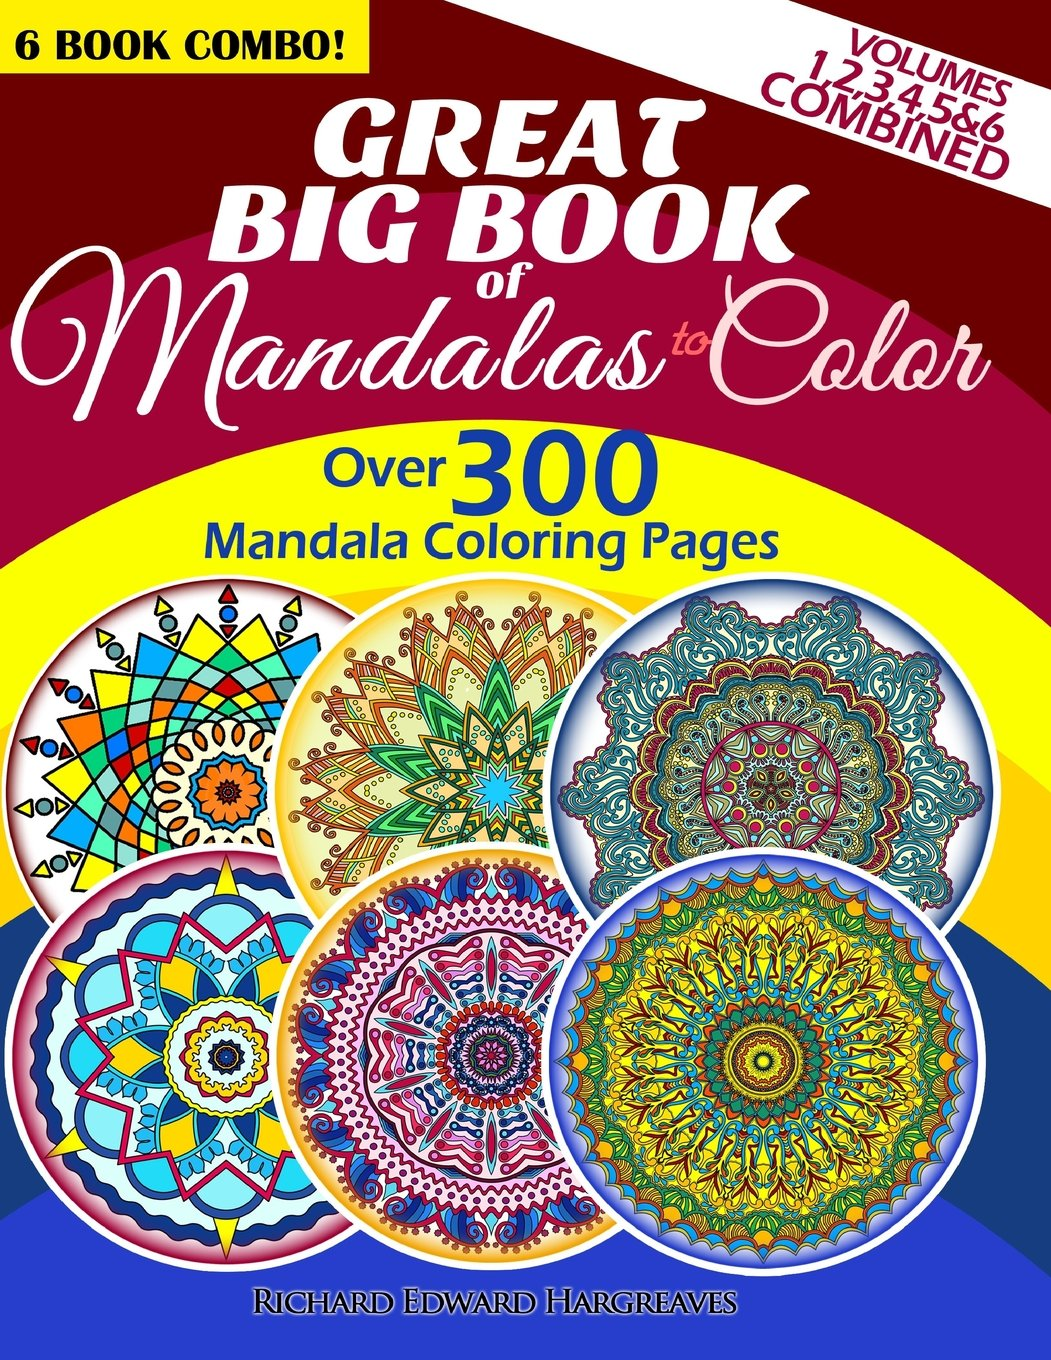 Great Big Book Mandalas Color product image